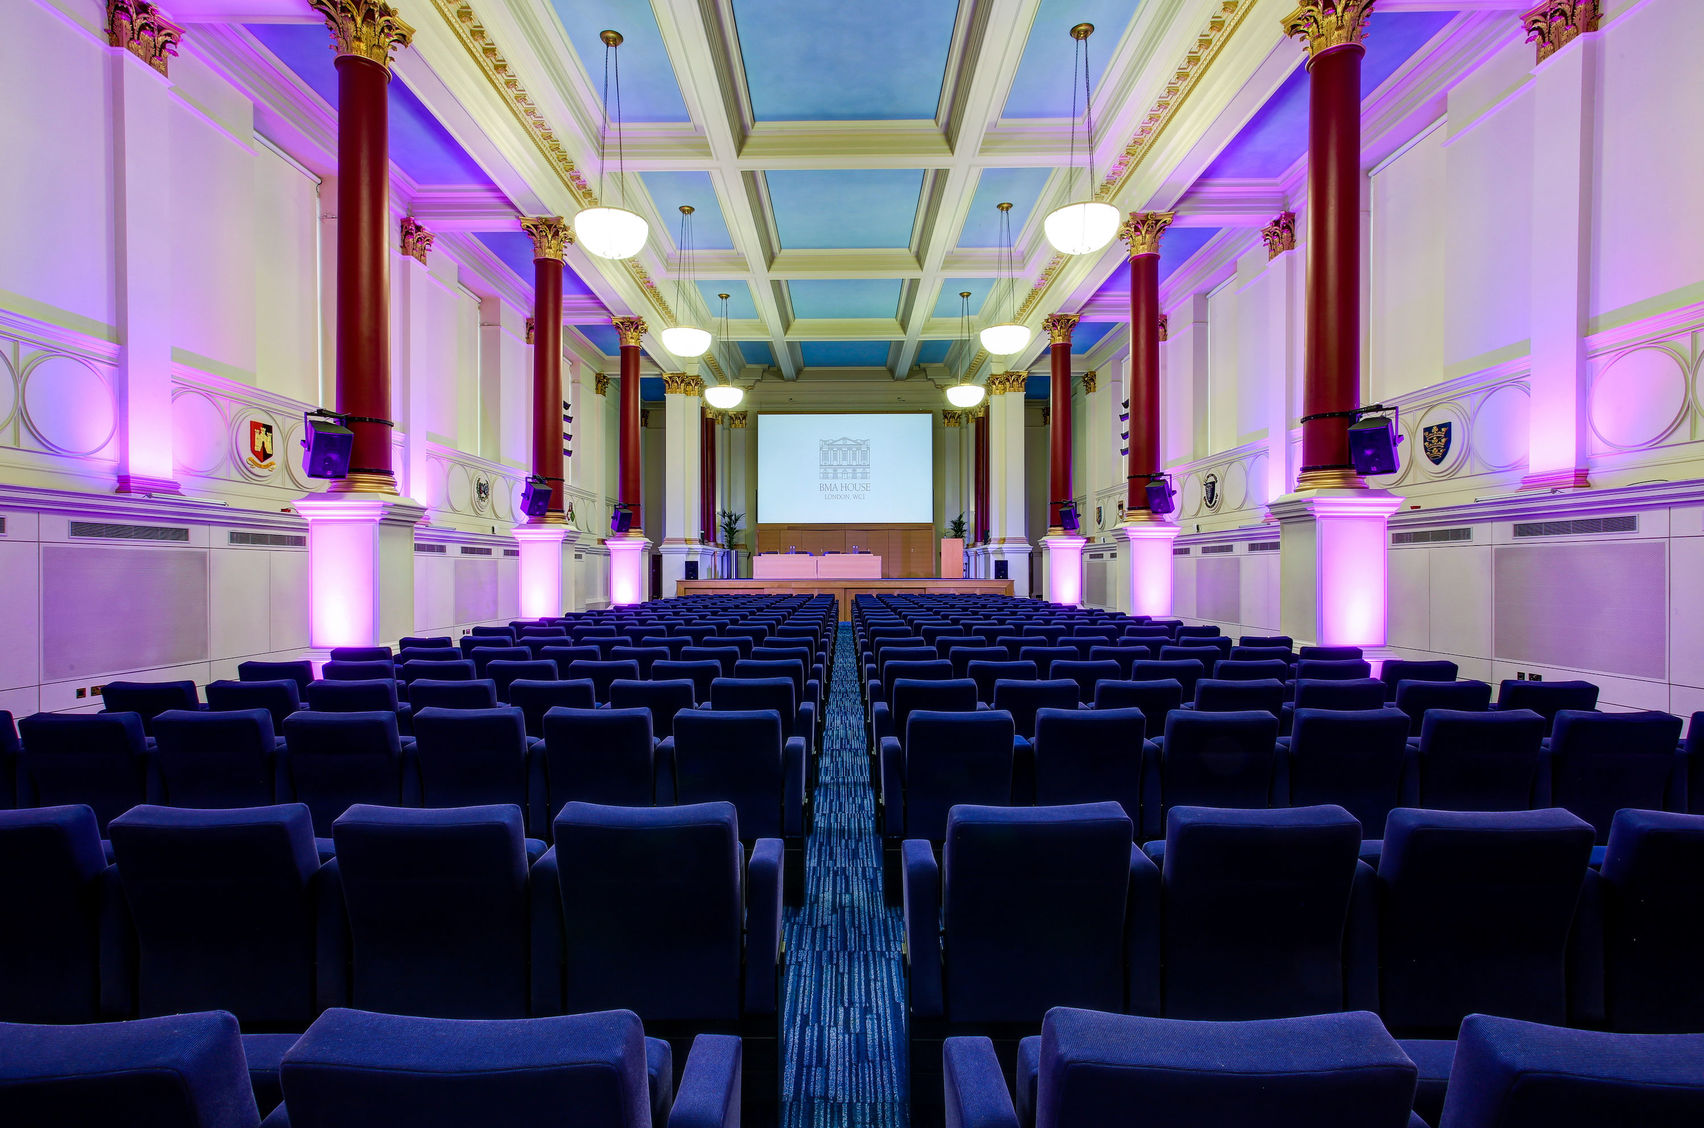 A large conference venue with high ceilings